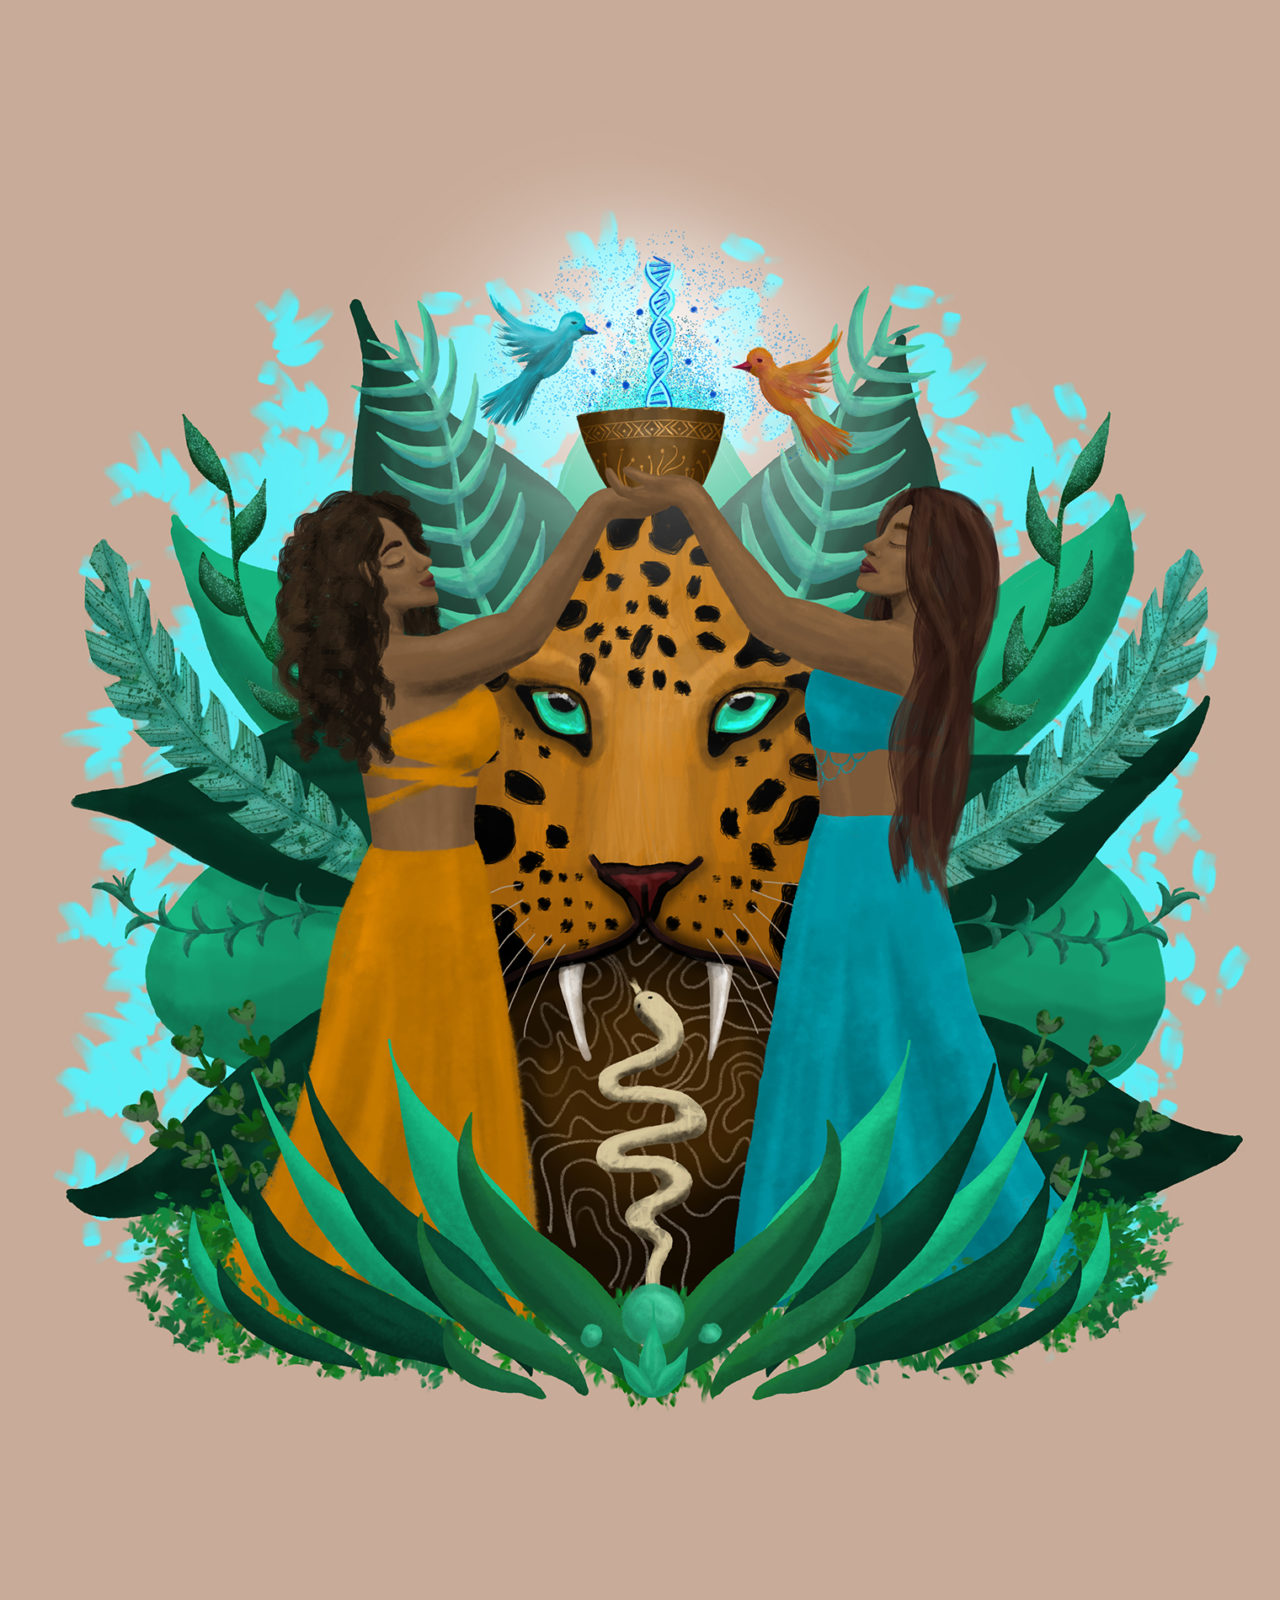 Psychedelic art showing two women holding up a bowl of Ayahuasca as jungle visions appear around them.